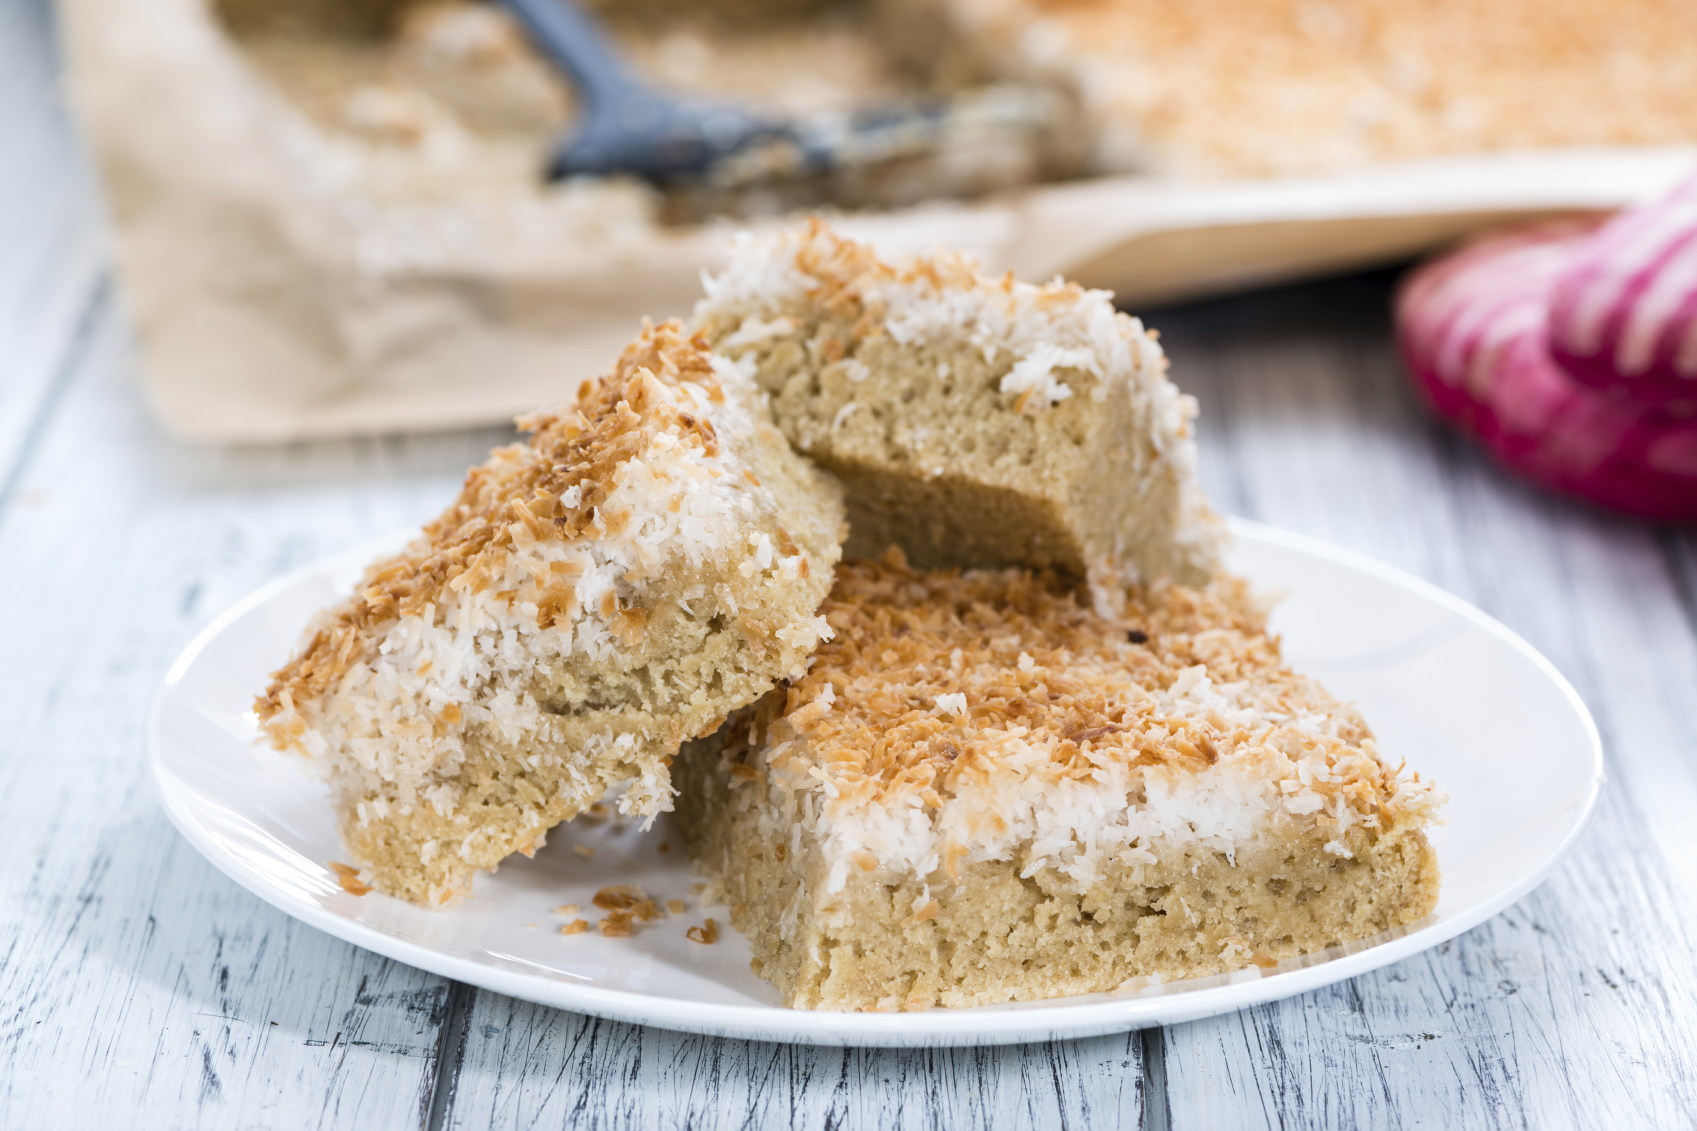 Marmalade cake with coconut topping